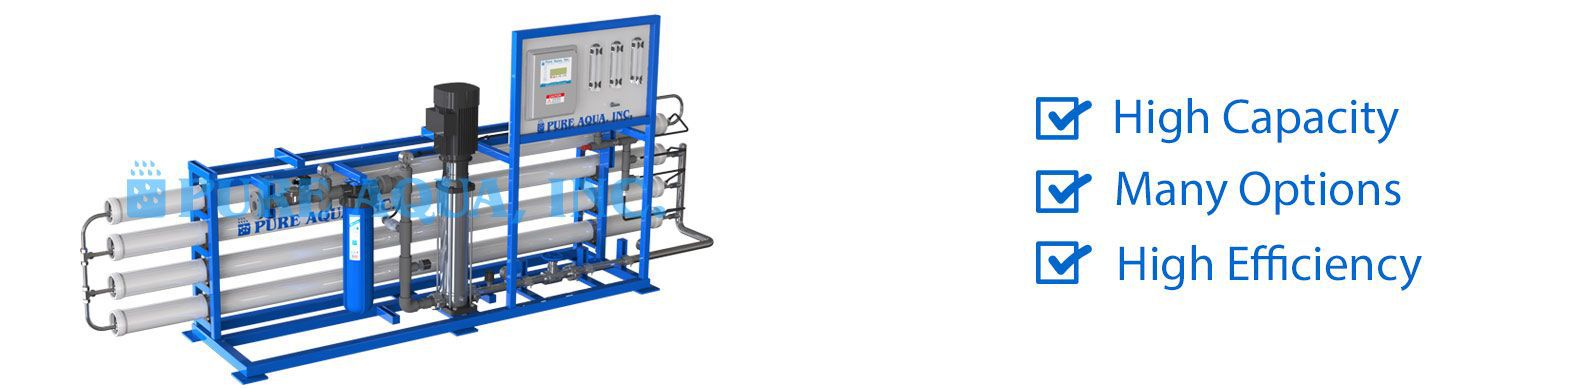 commercial brackish water reverse osmosis BWRO systems 13000-32000 gpd features